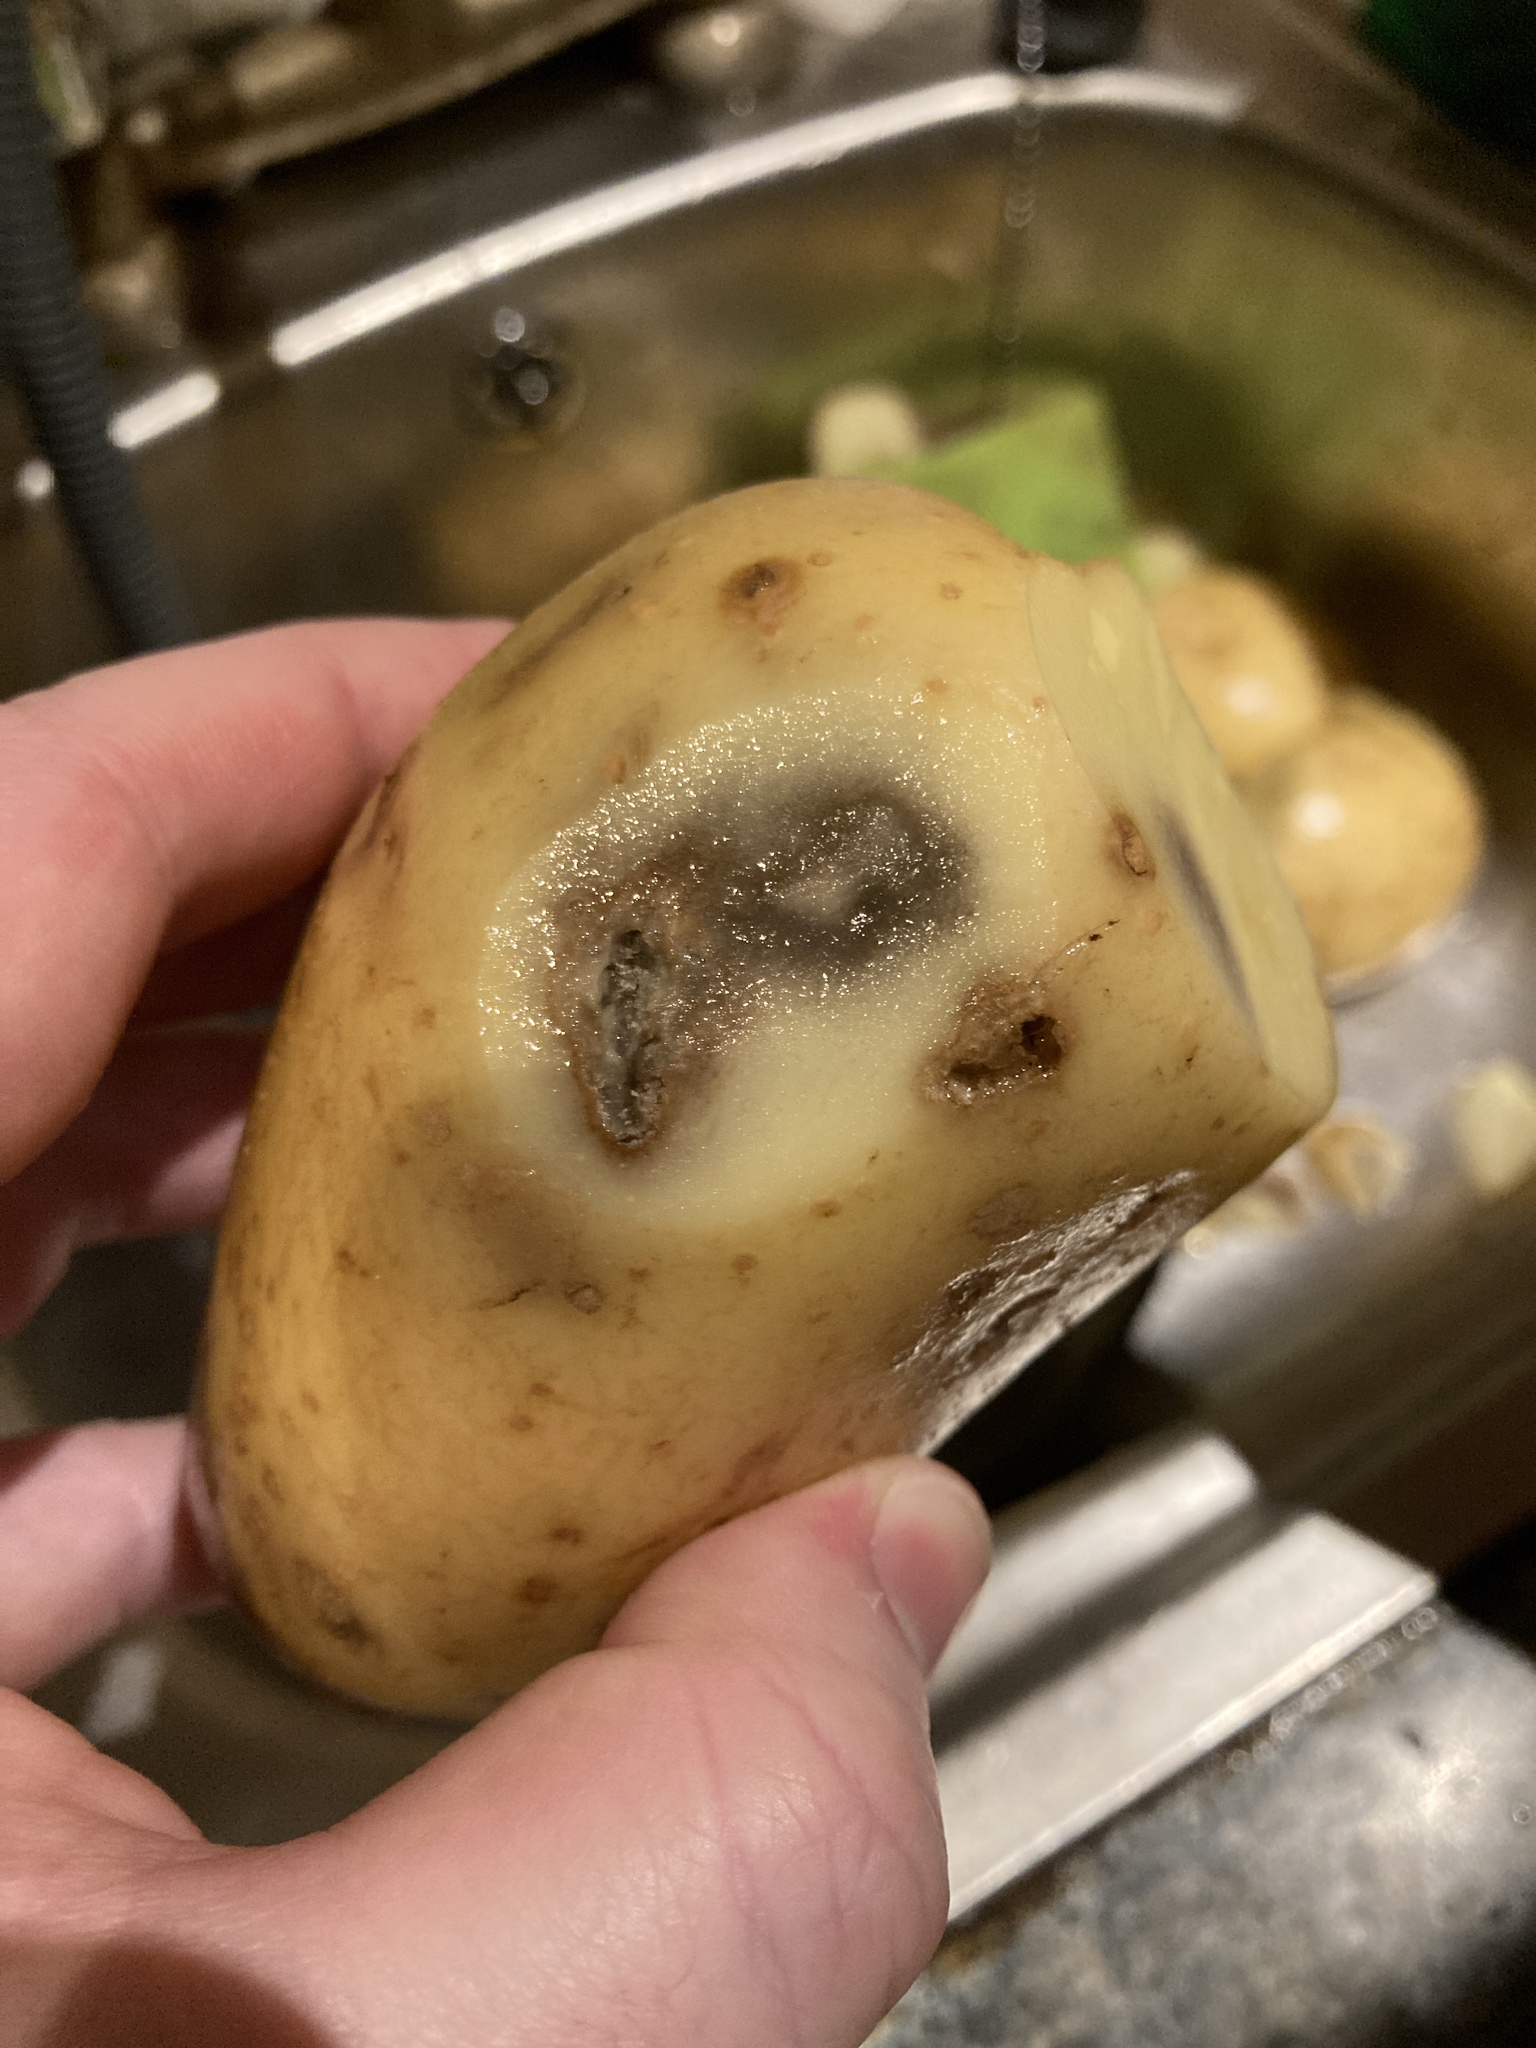 Hey @lidl_ireland do you think this potato I just brought home is in sellable or edible condition? Because I don't